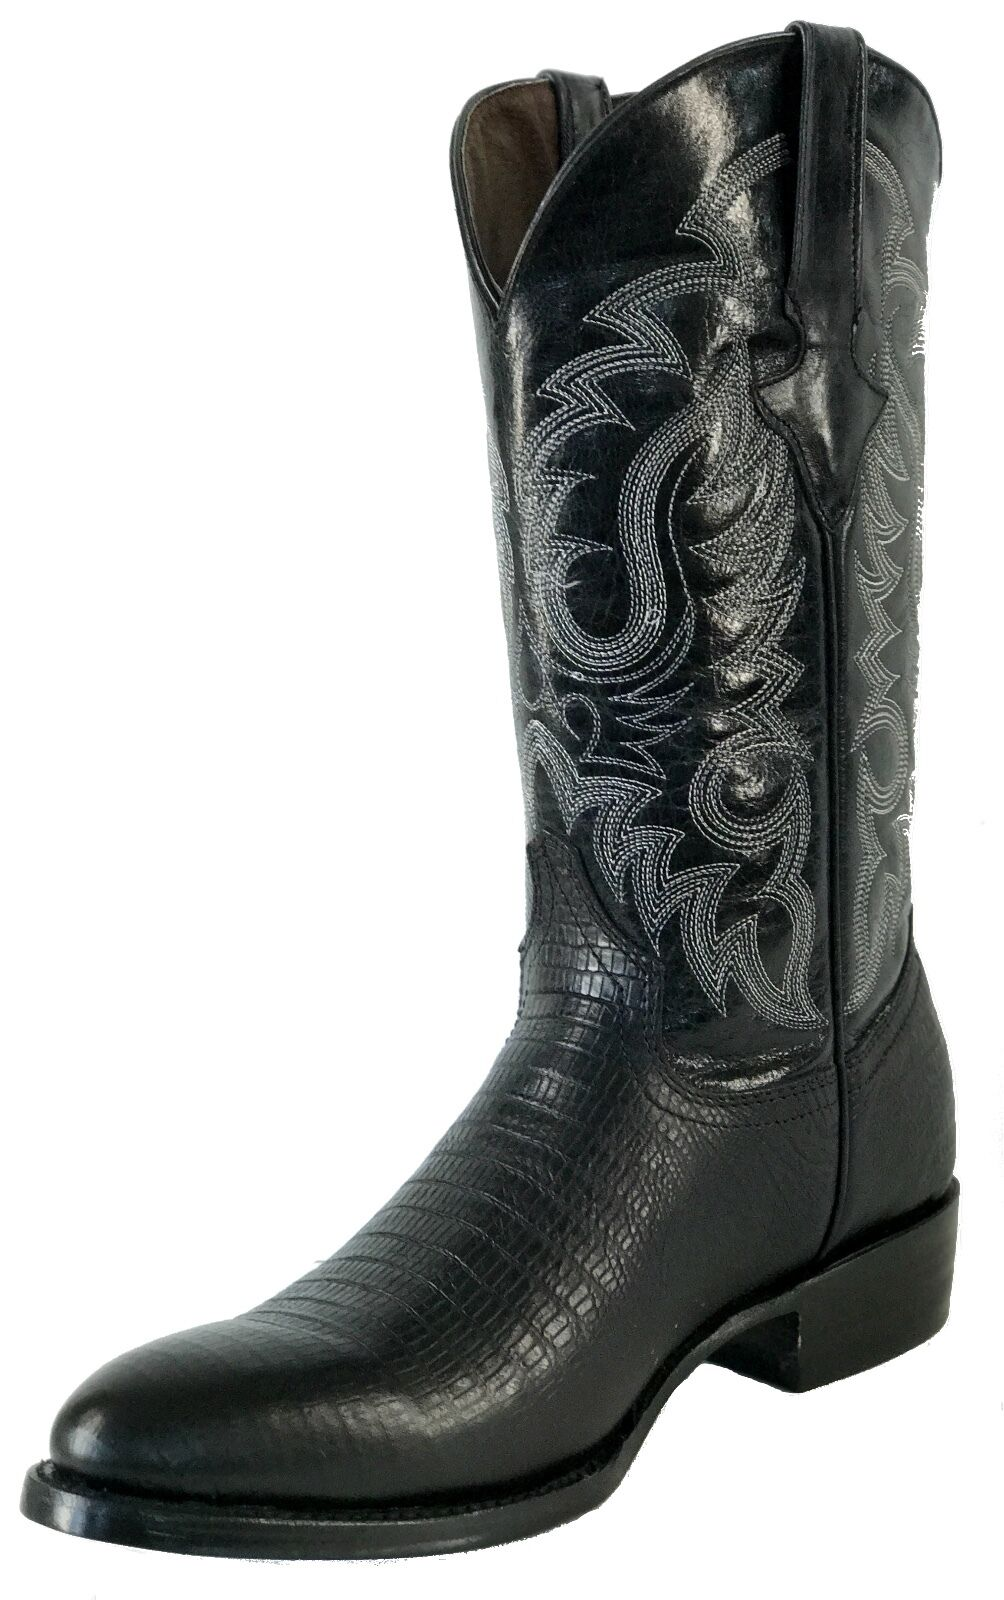 Men's New Leather Exotic Lizard Design Rodeo Western Cowboy Boots R Toe  Black